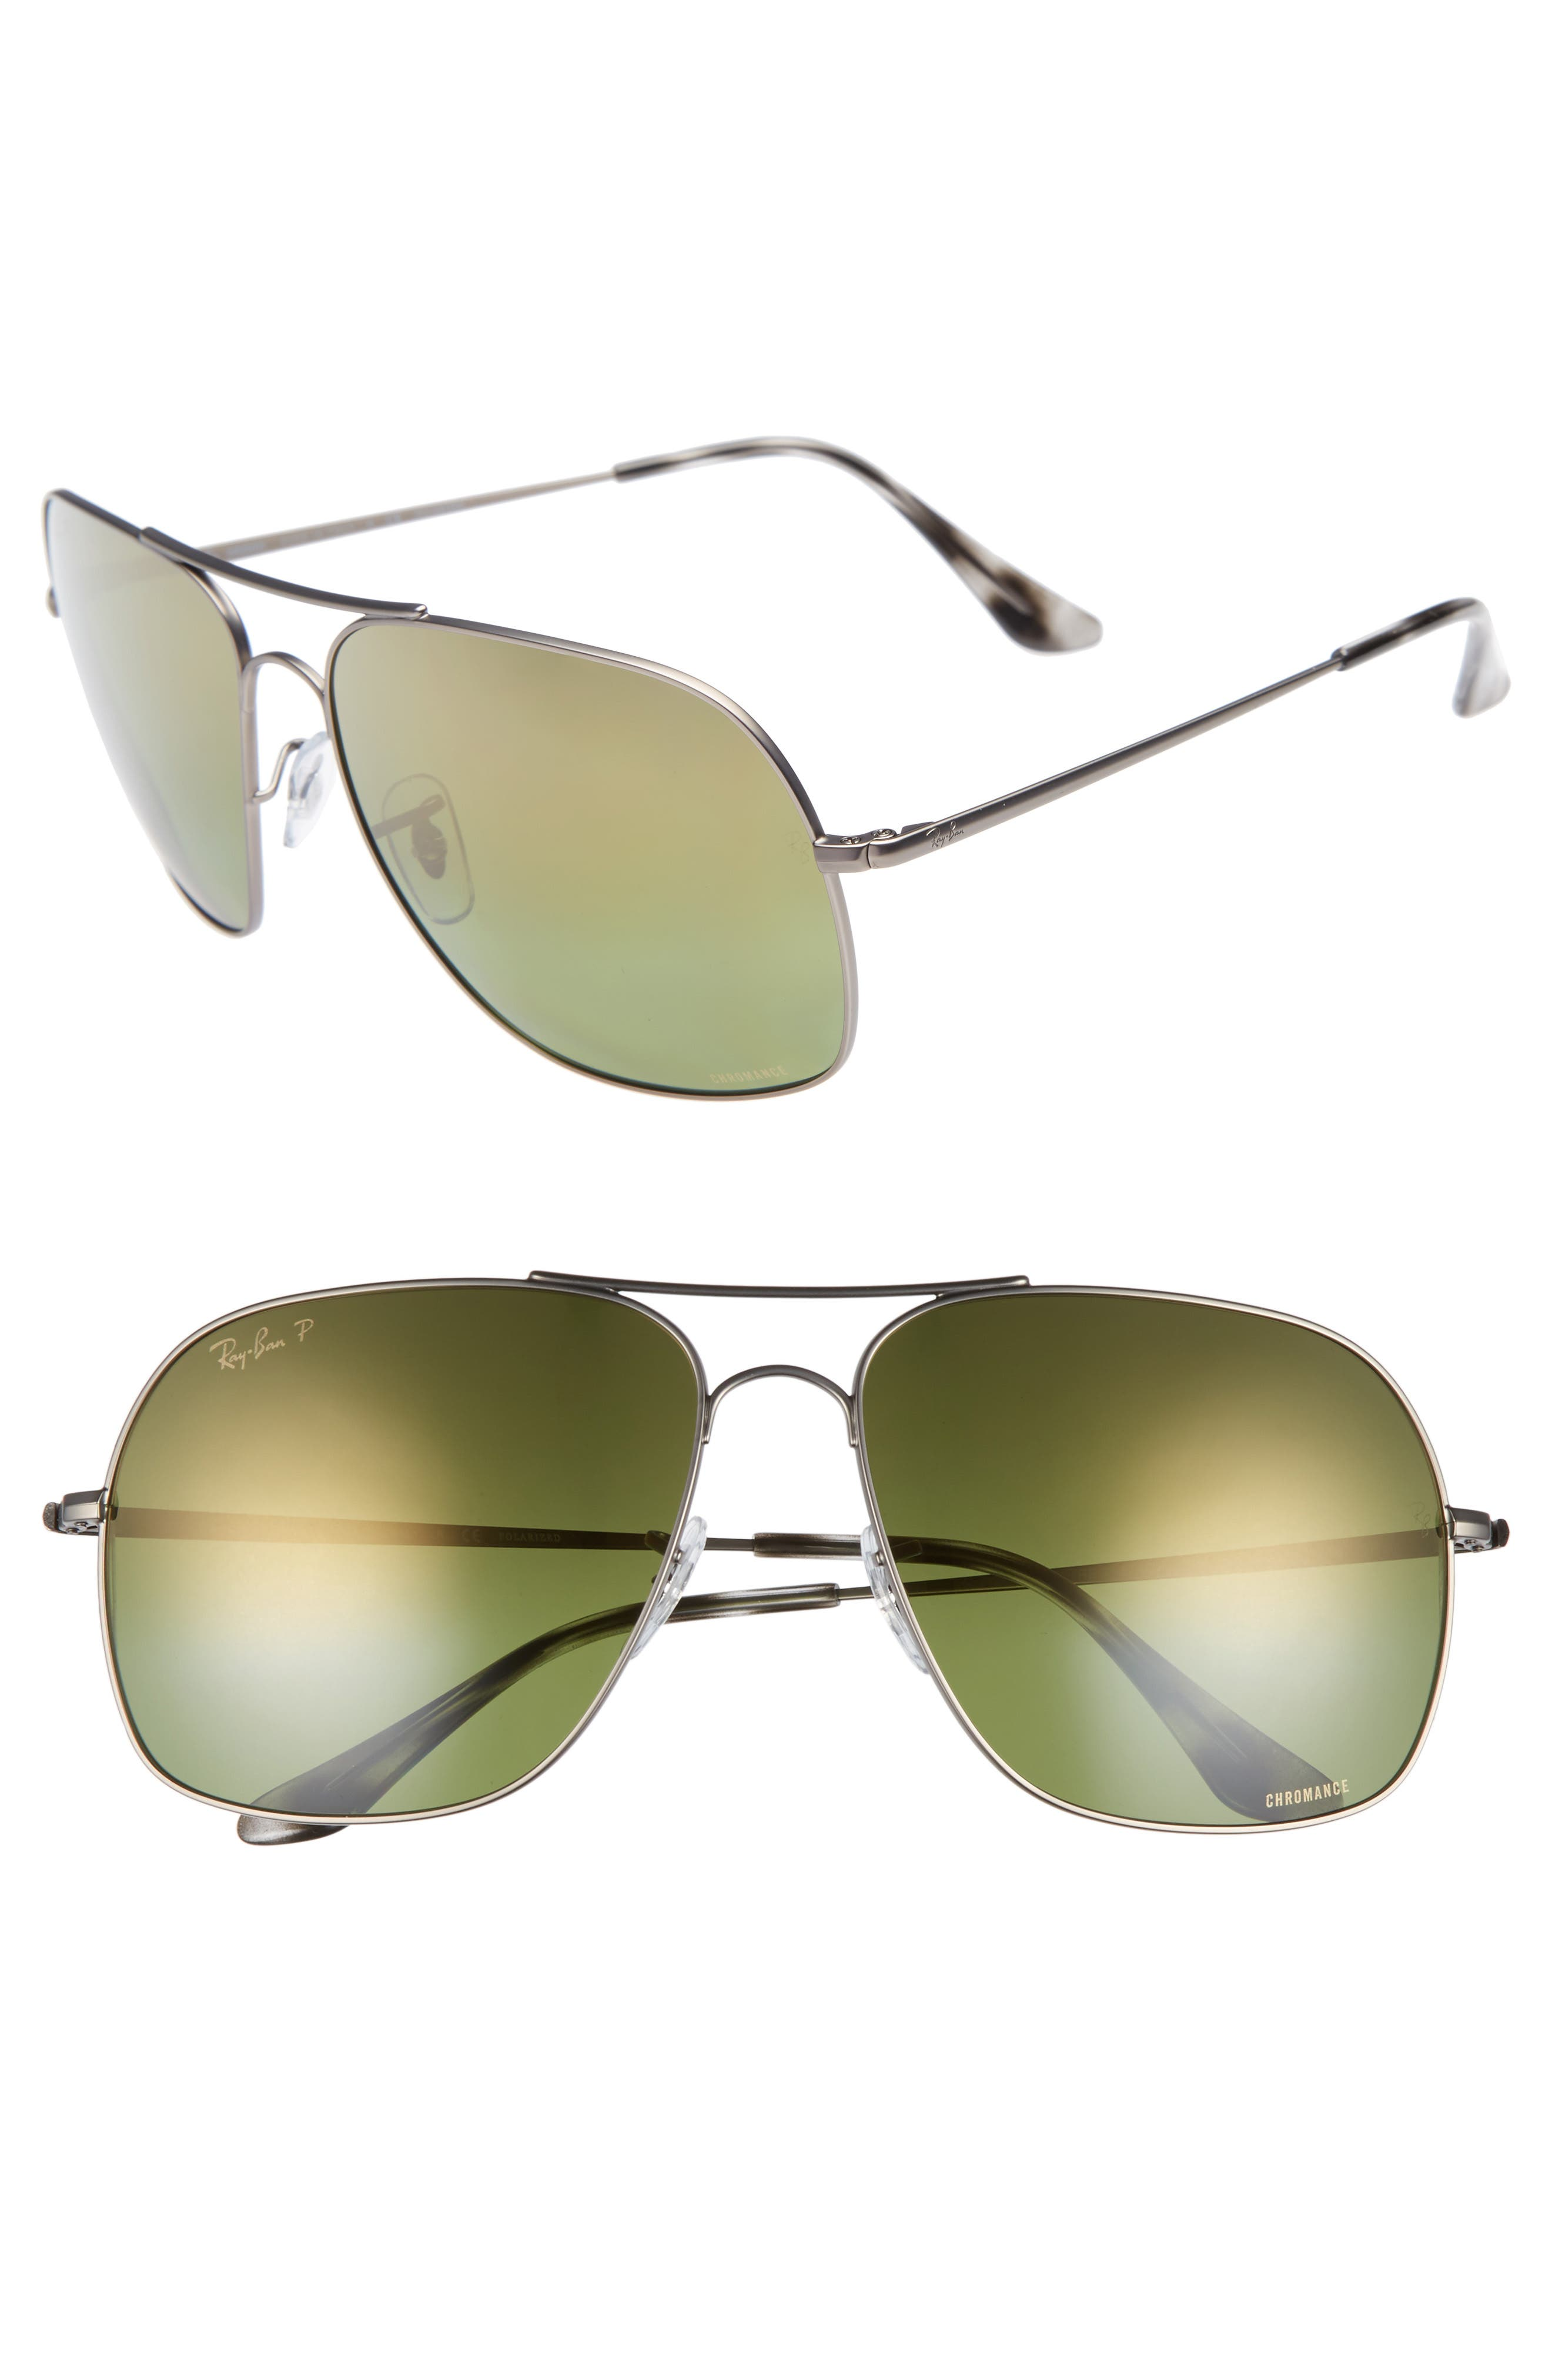 Chromance 61mm Double Bridge Aviator Sunglasses,                             Main thumbnail 1, color,                             GUNMETAL/ GREEN